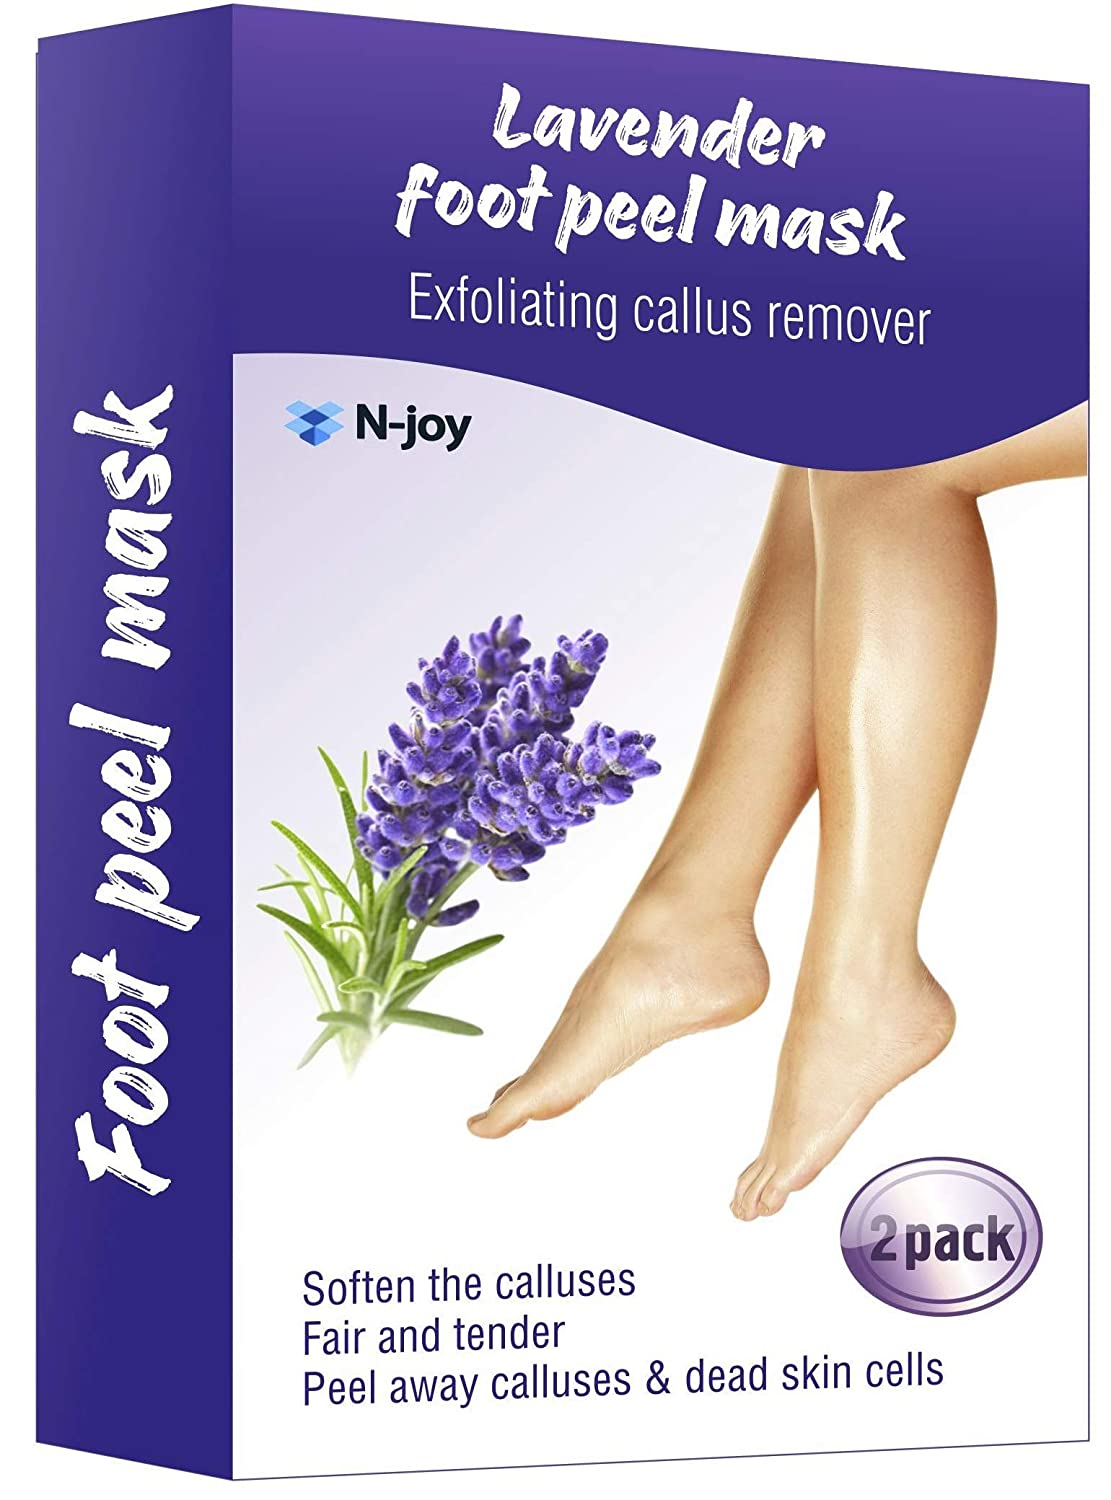 Foot Peel Mask - Exfoliating Sock Foot Mask - Peel Cuticle Remover - Foot Mask for Peeling Away Calluses and Dead Skin Cells - Get Silky Soft Feet Pedicure Kit